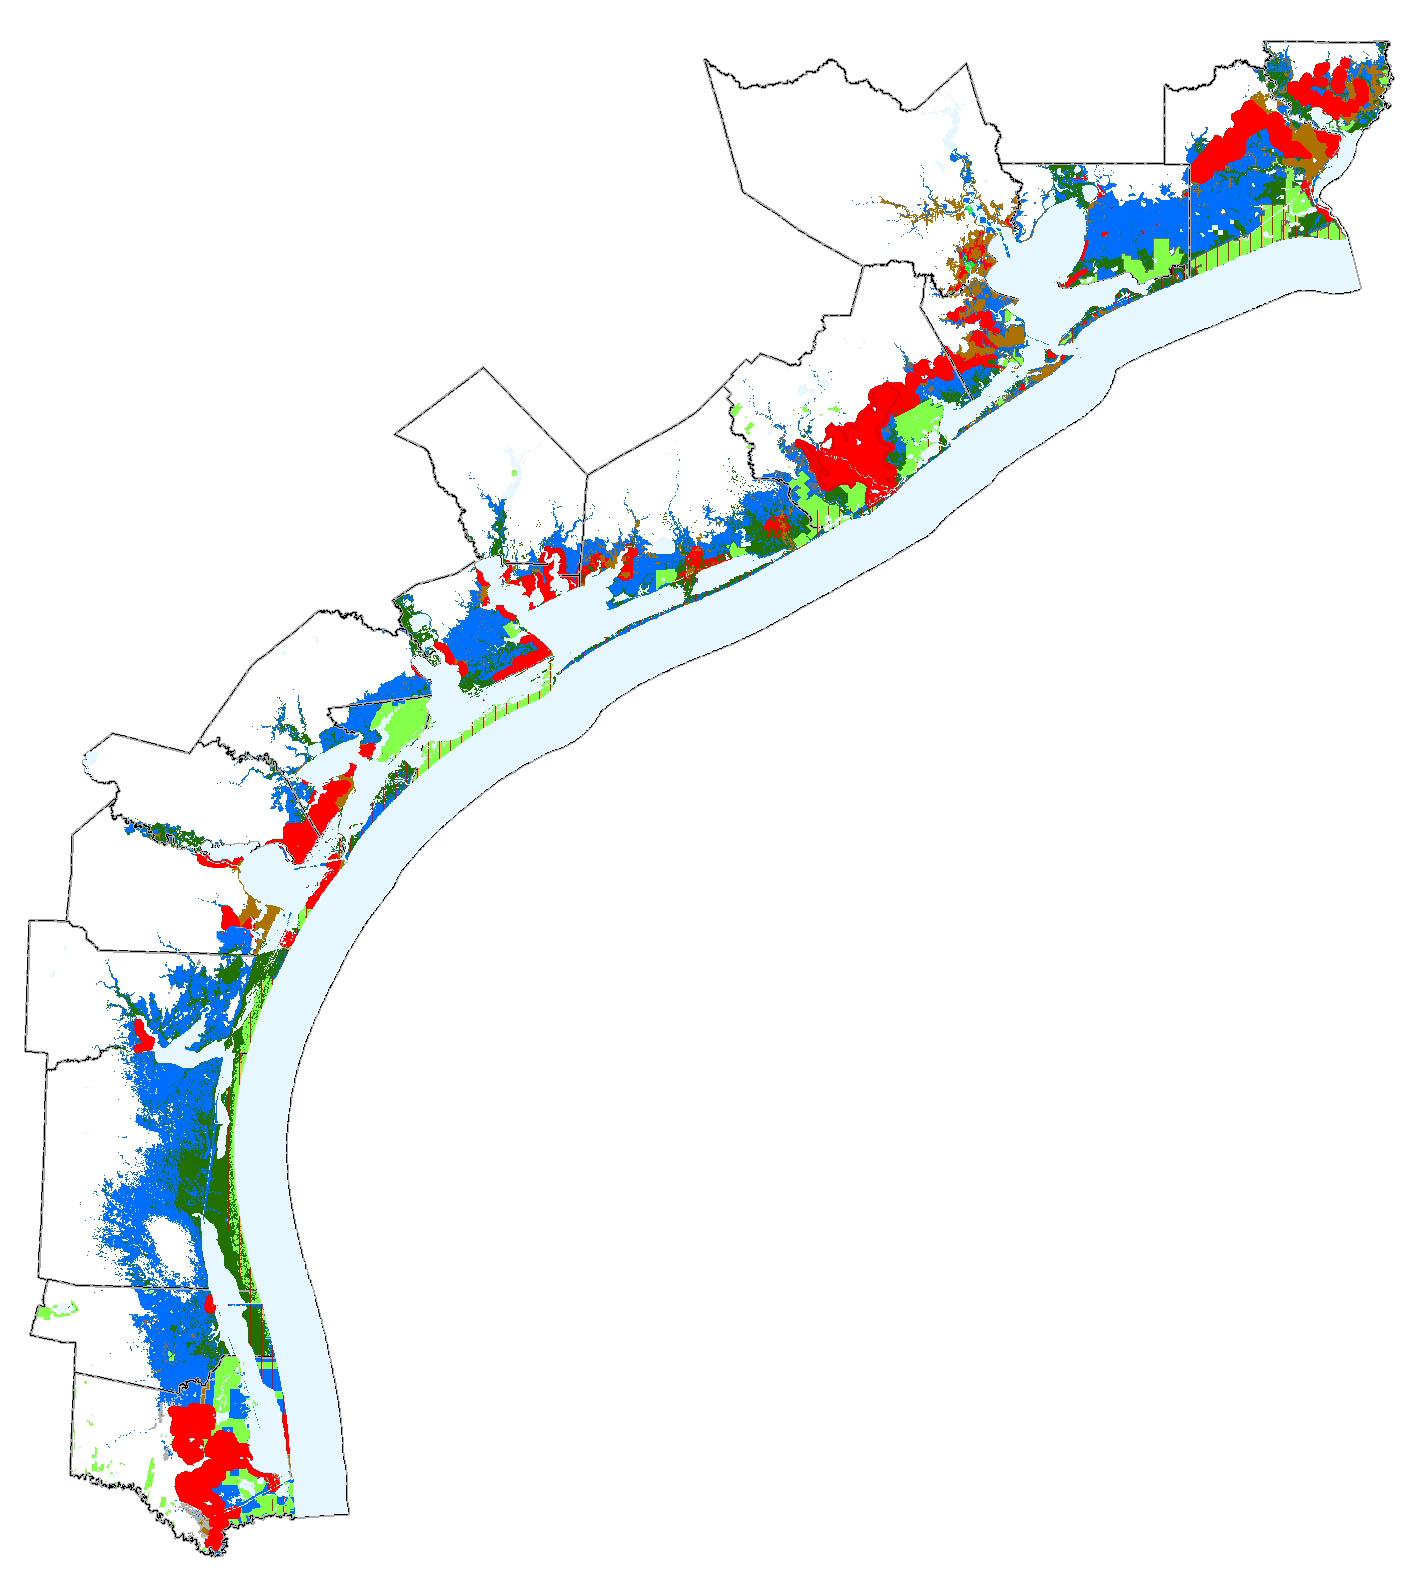 Map Of Texas And Florida.Sea Level Rise Planning Maps Likelihood Of Shore Protection In Florida